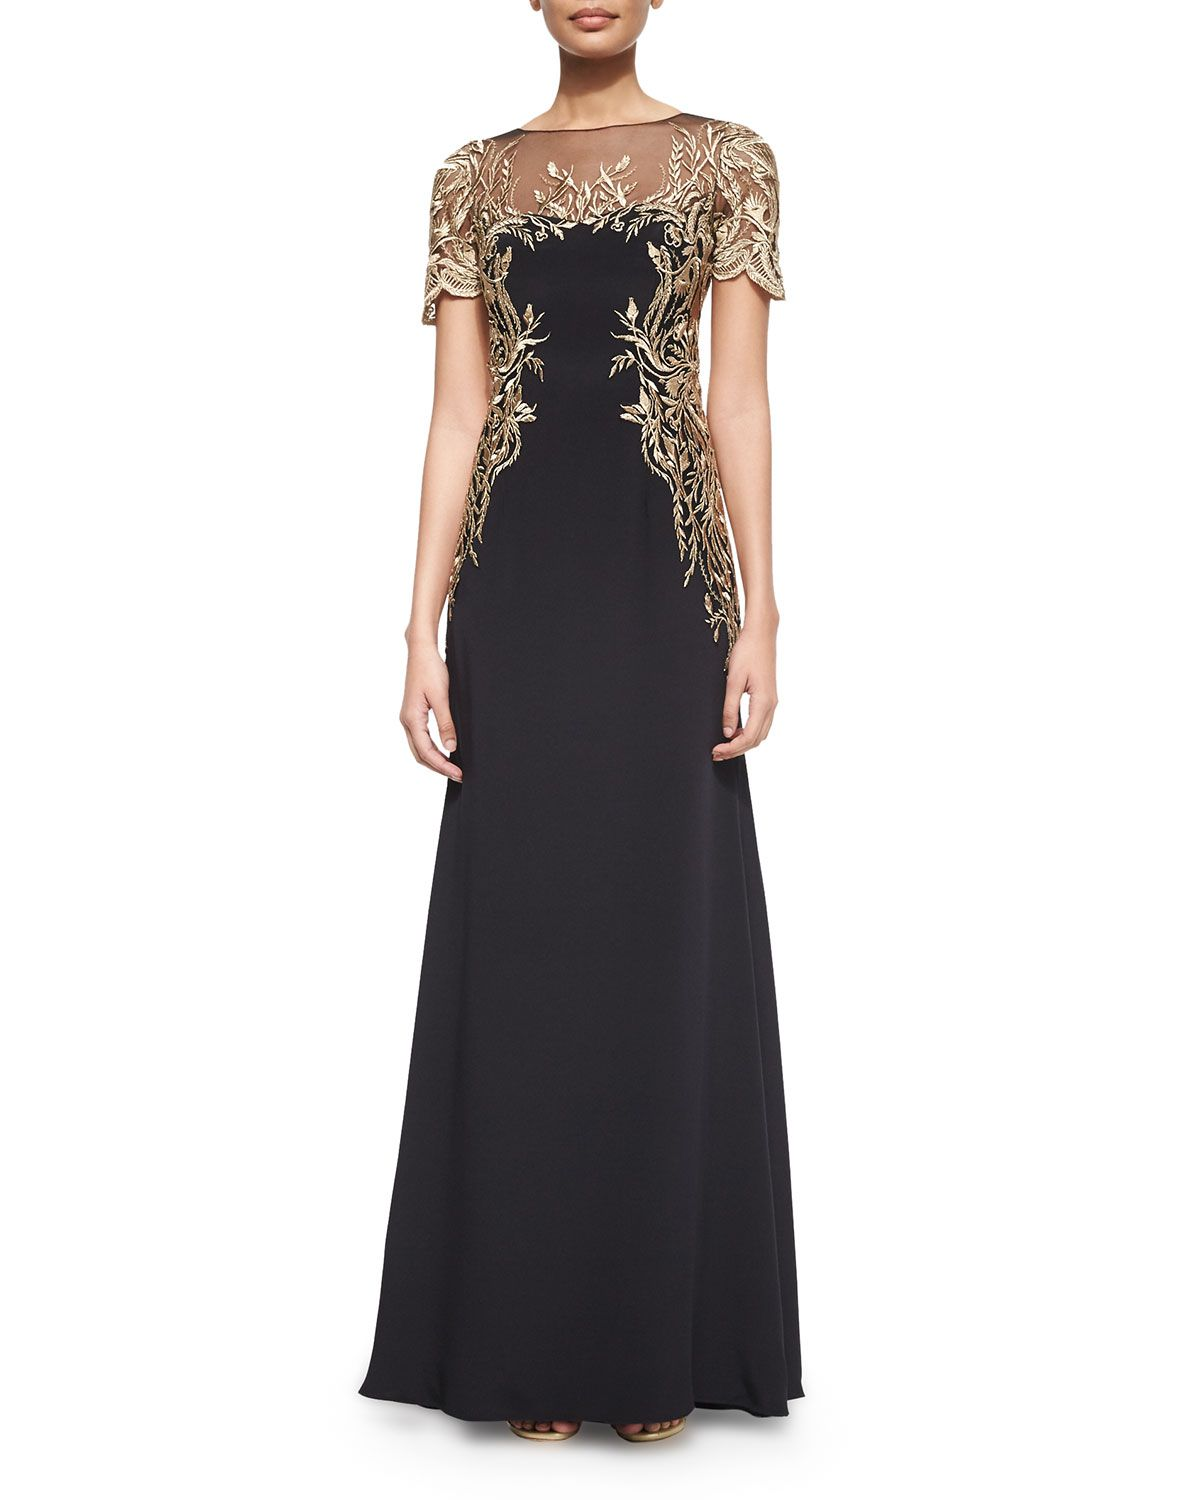 72330a78 Short-Sleeve Embroidered Gown, Women's, Size: 10, Black - Marchesa Notte